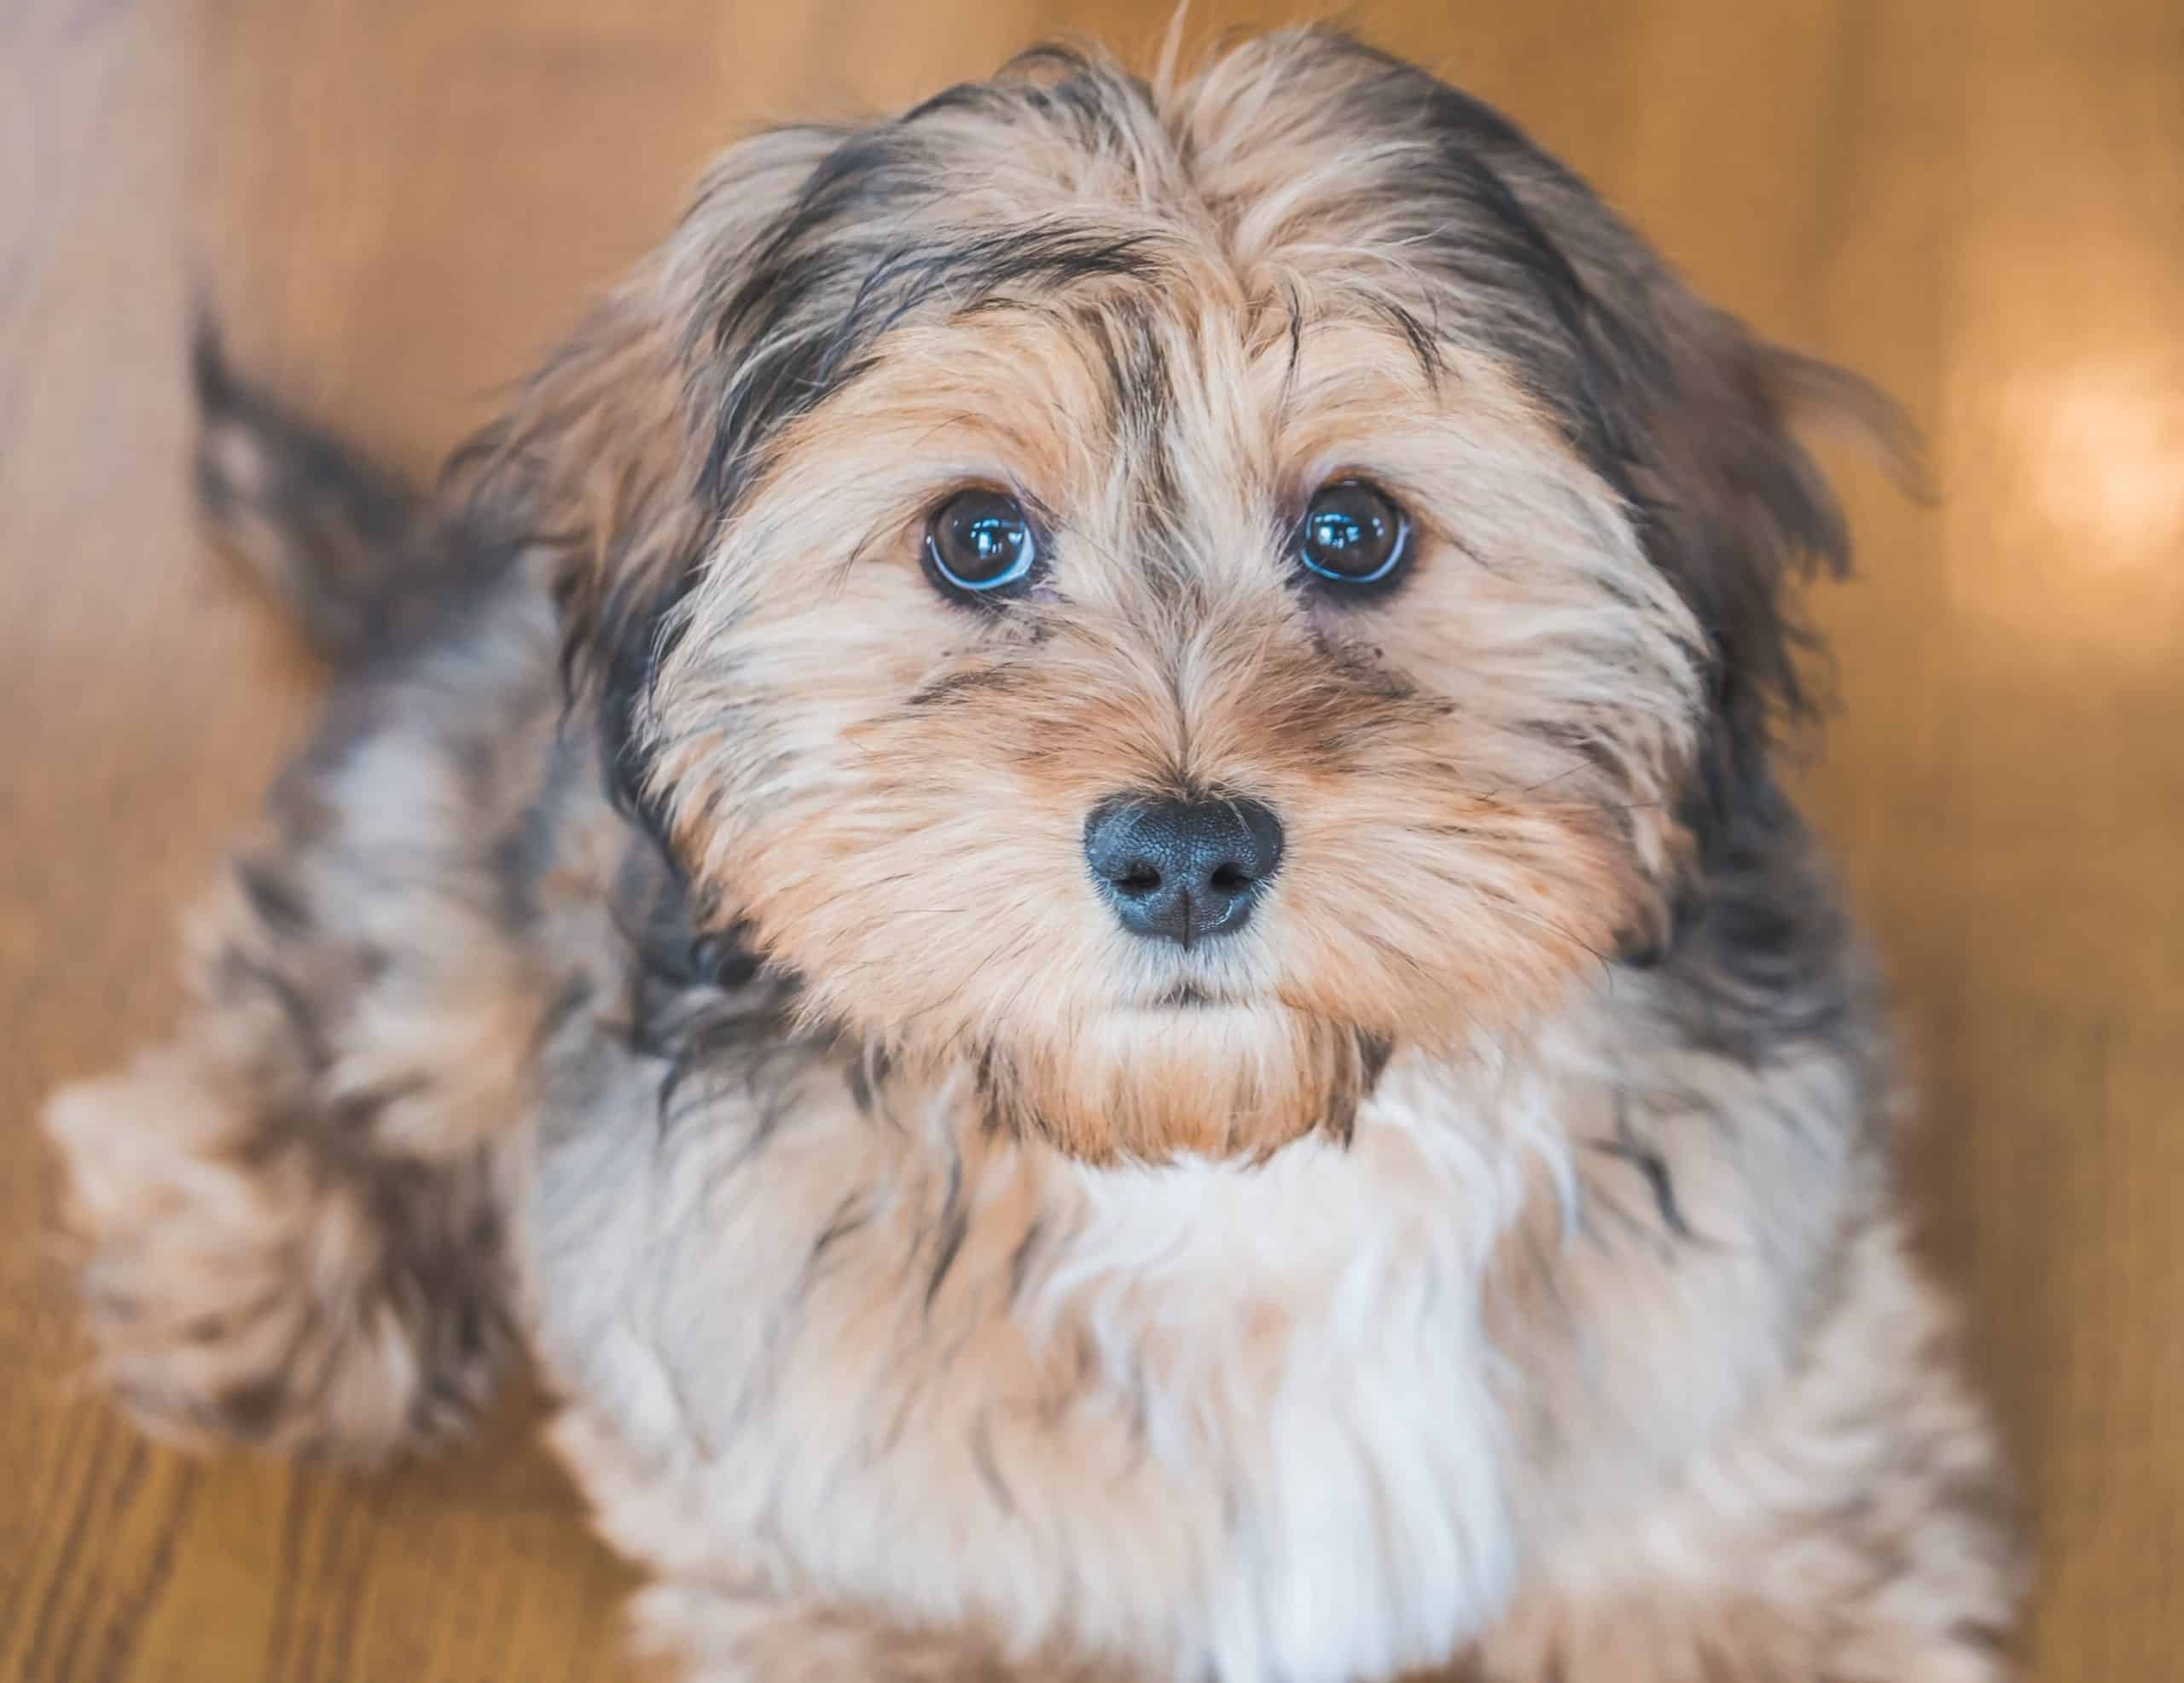 The Shih-Poo gives you the best of the Shih-Tzu and Poodle. The dogs can be stubborn and fearful. But they also are smart, sweet, and cuddly.